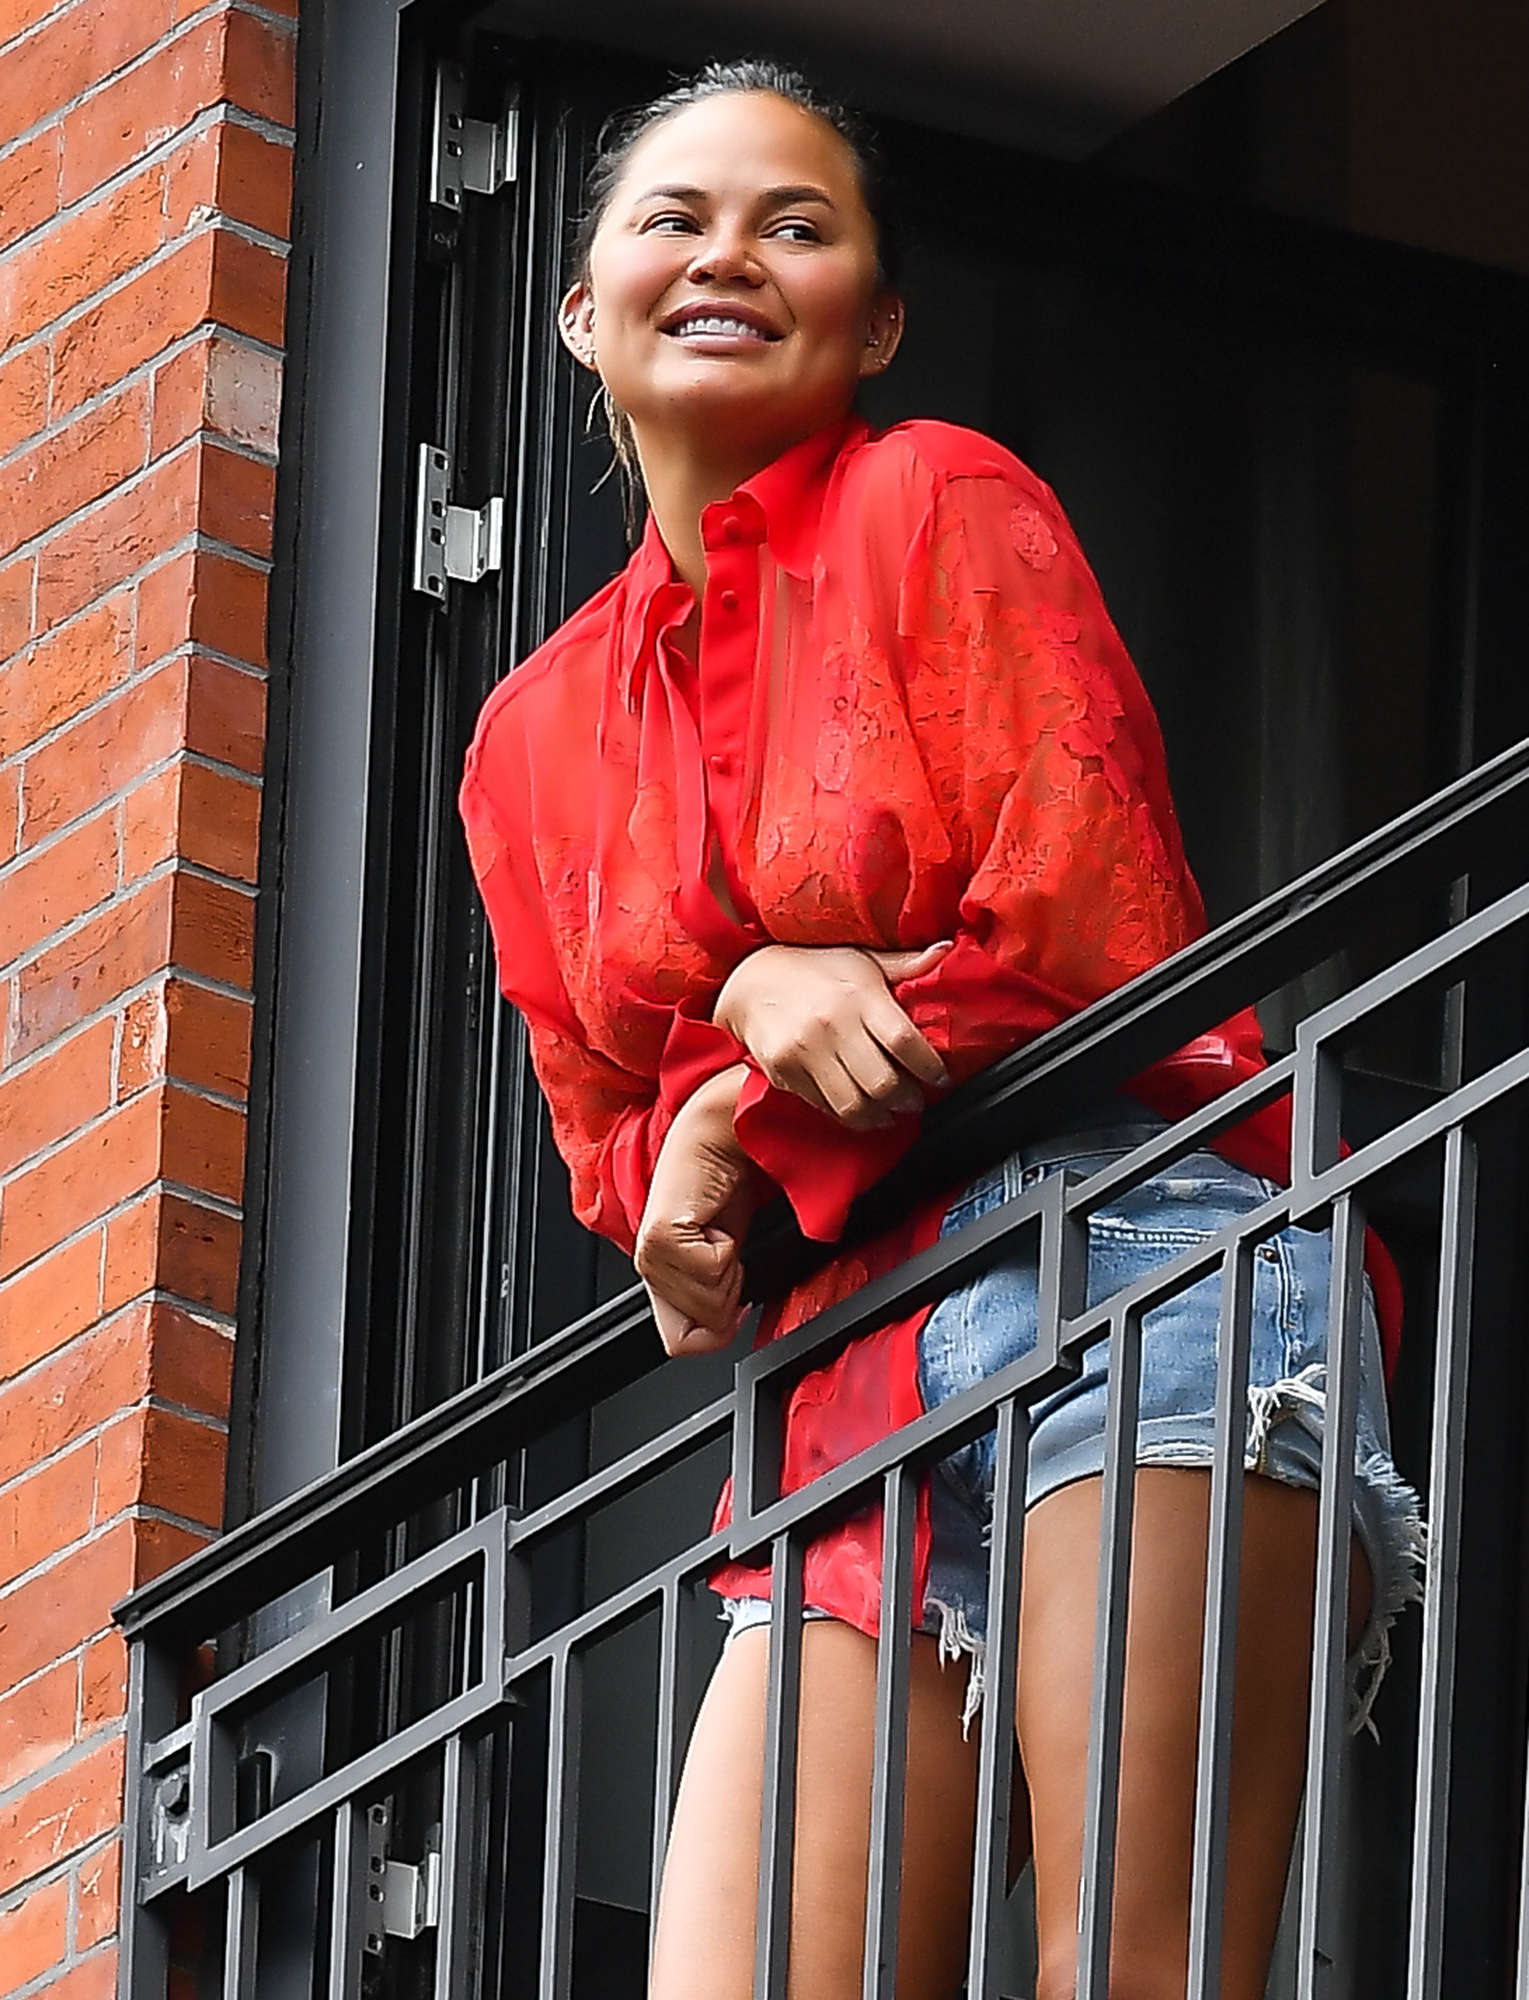 Chrissy Teigen Wears A Red Top And Jean Shorts In Soho, New York City